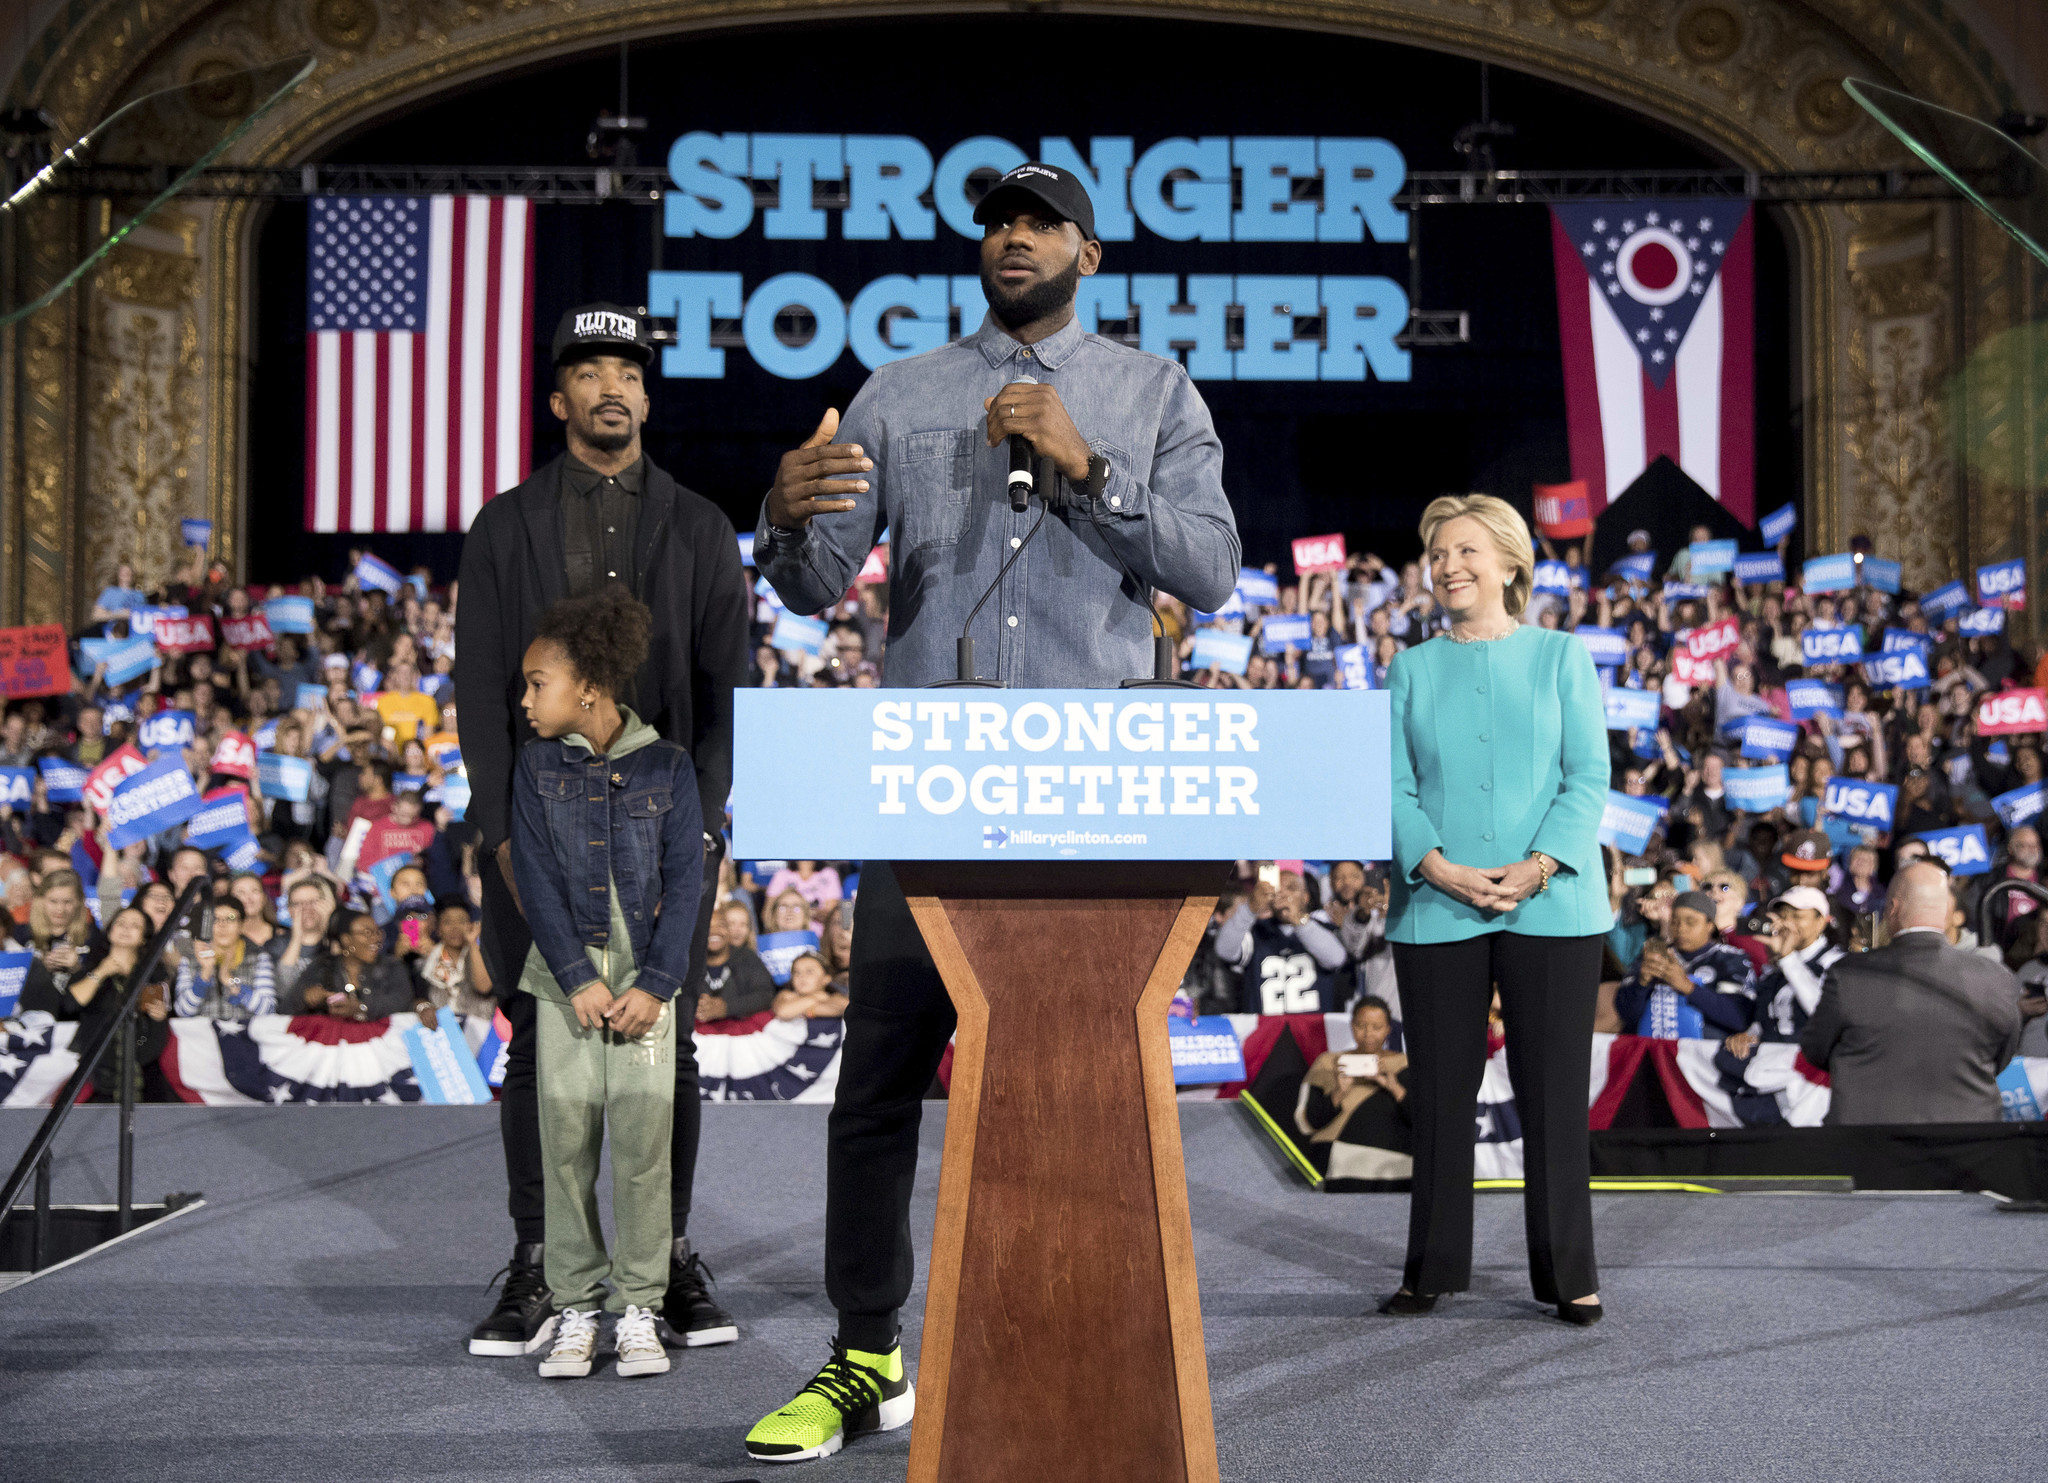 LeBron James, center, accompanied by Cleveland Cavaliers teammate J.R. Smith, left, and his daughter Demi, joined Hillary Clinton at a rally at the Cleveland Public Auditorium on Nov. 6.